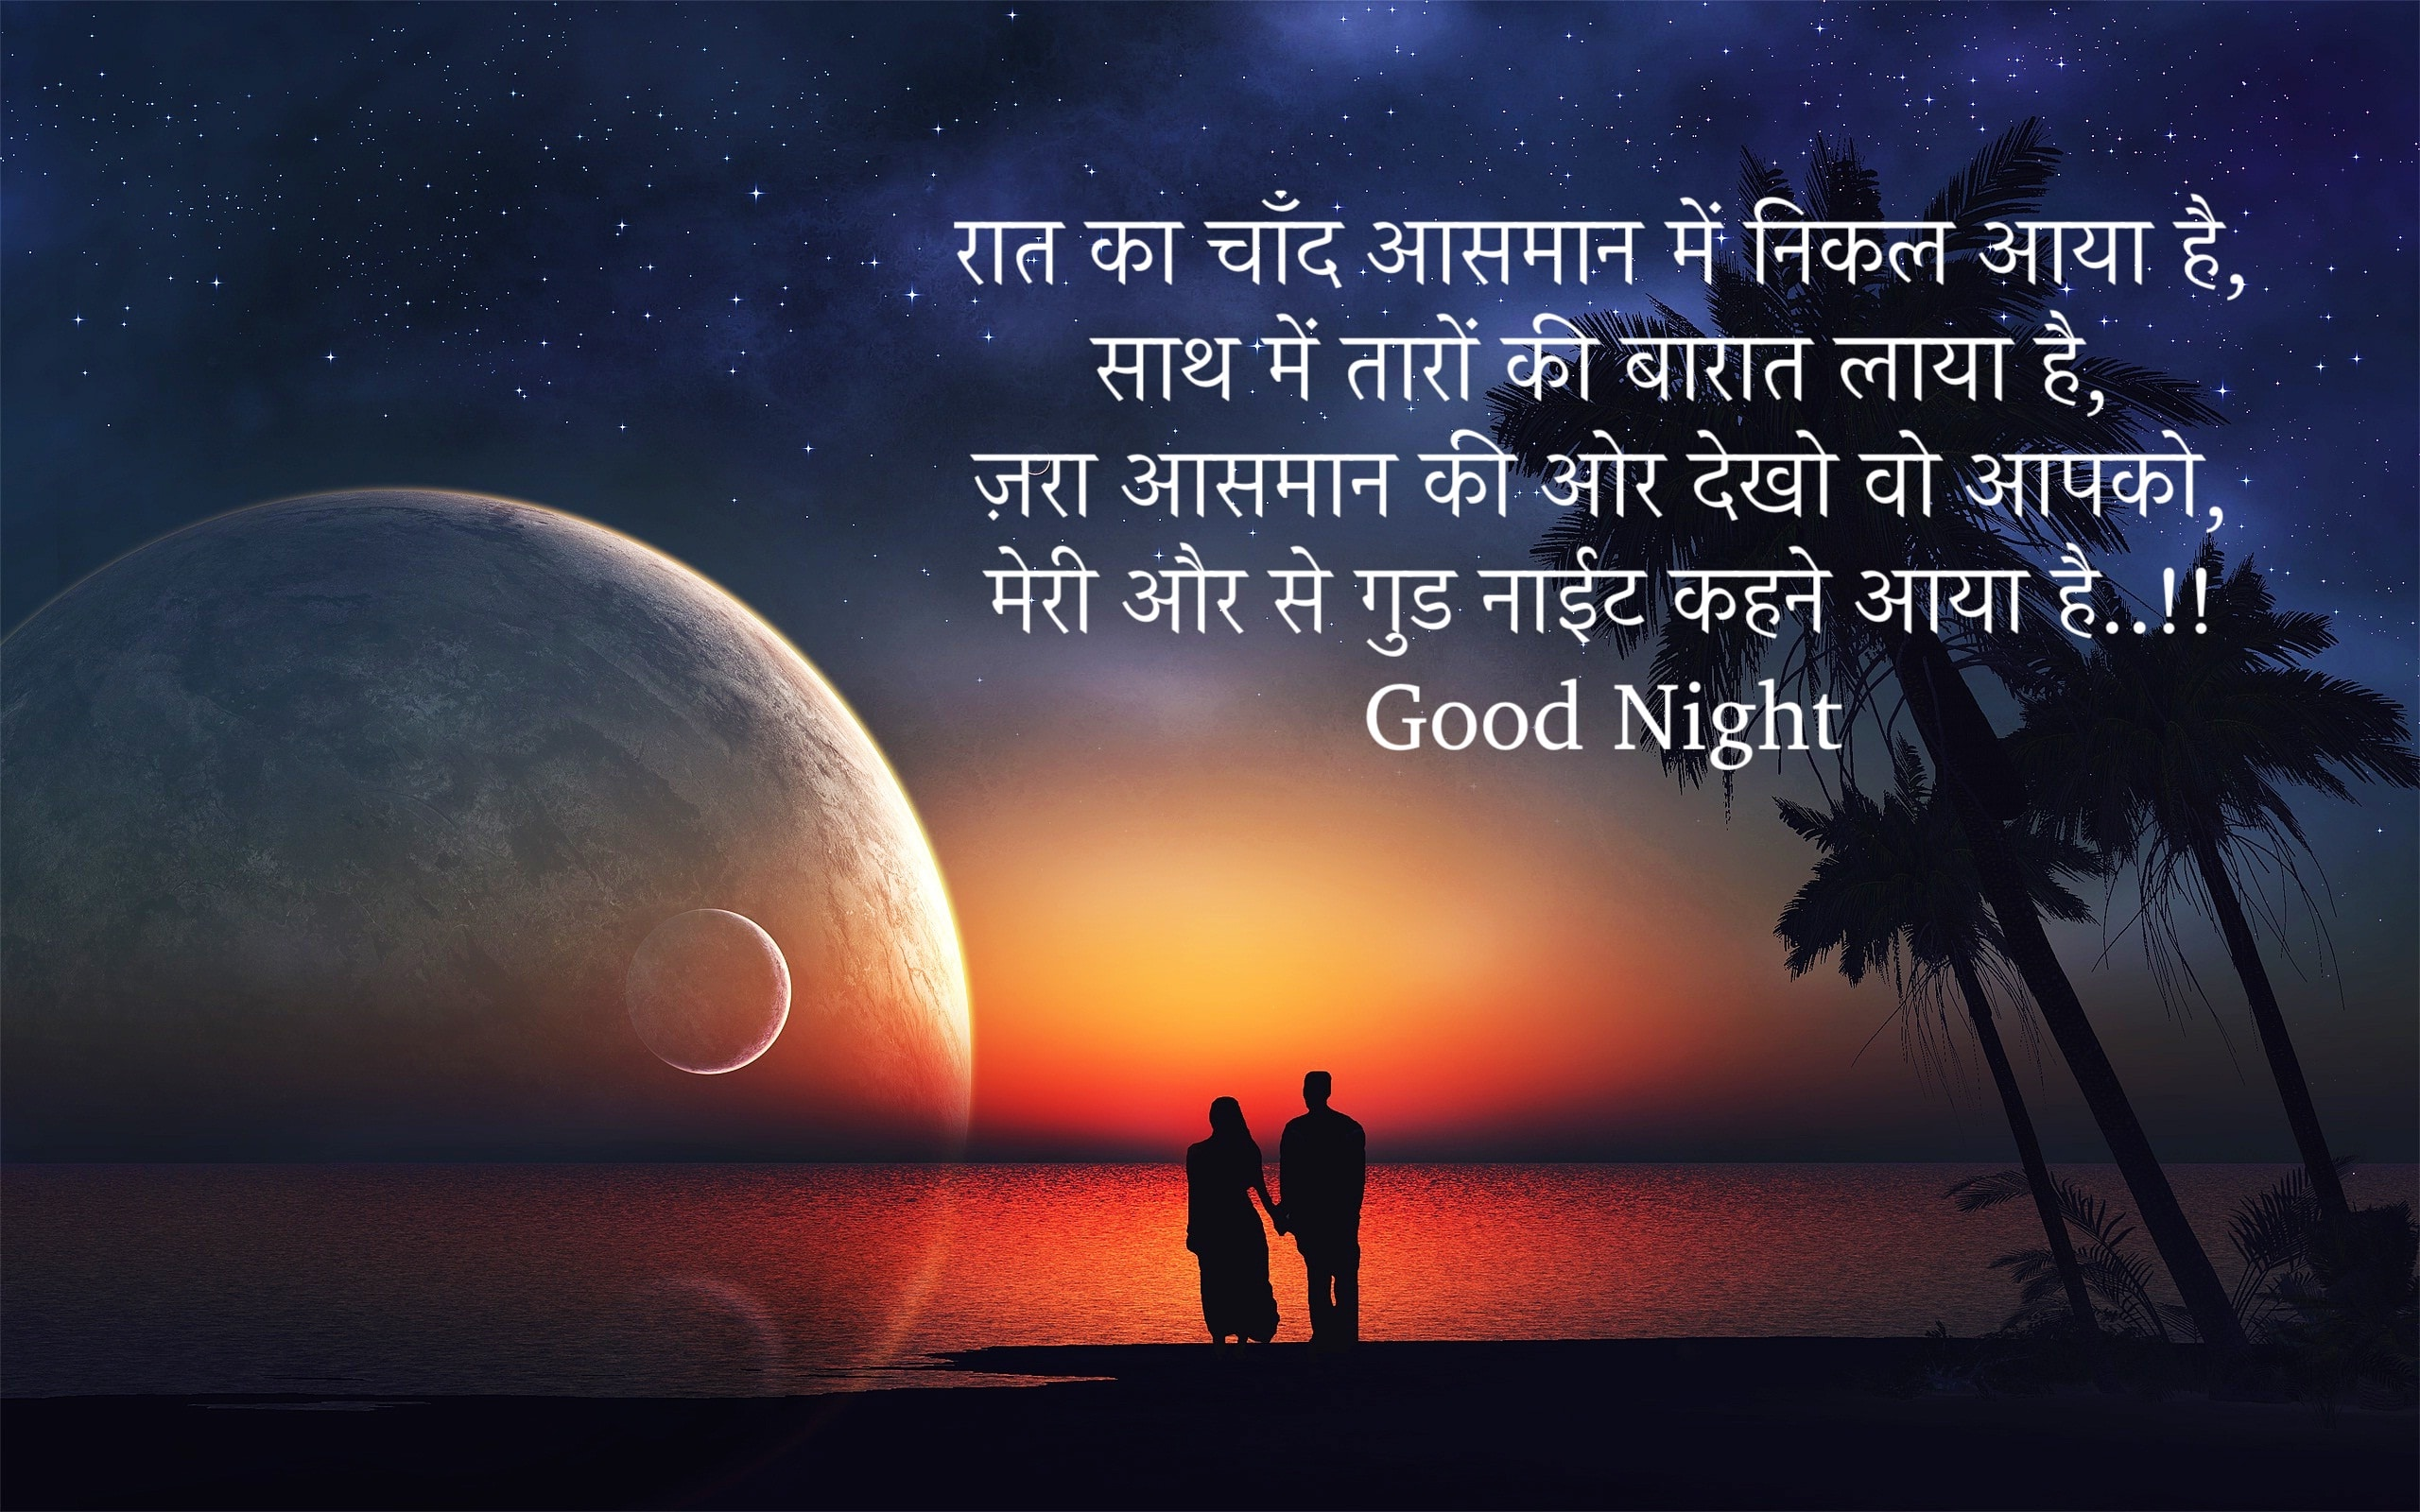 Good Night Hindi Shayari